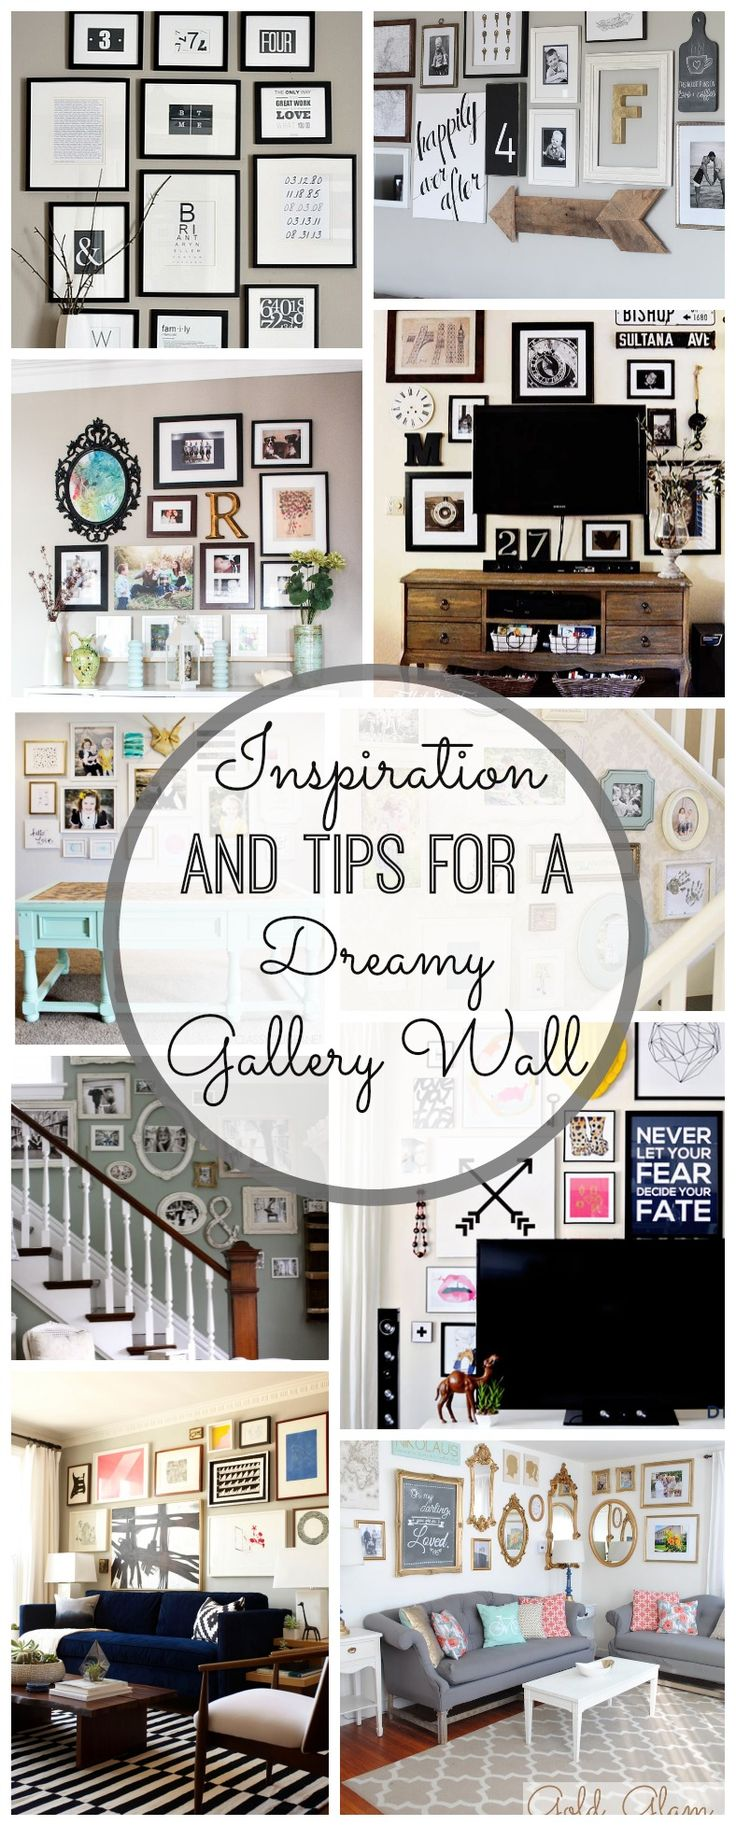 Gallery Wall Inspiration and Tips will help you create your own unique gallery…